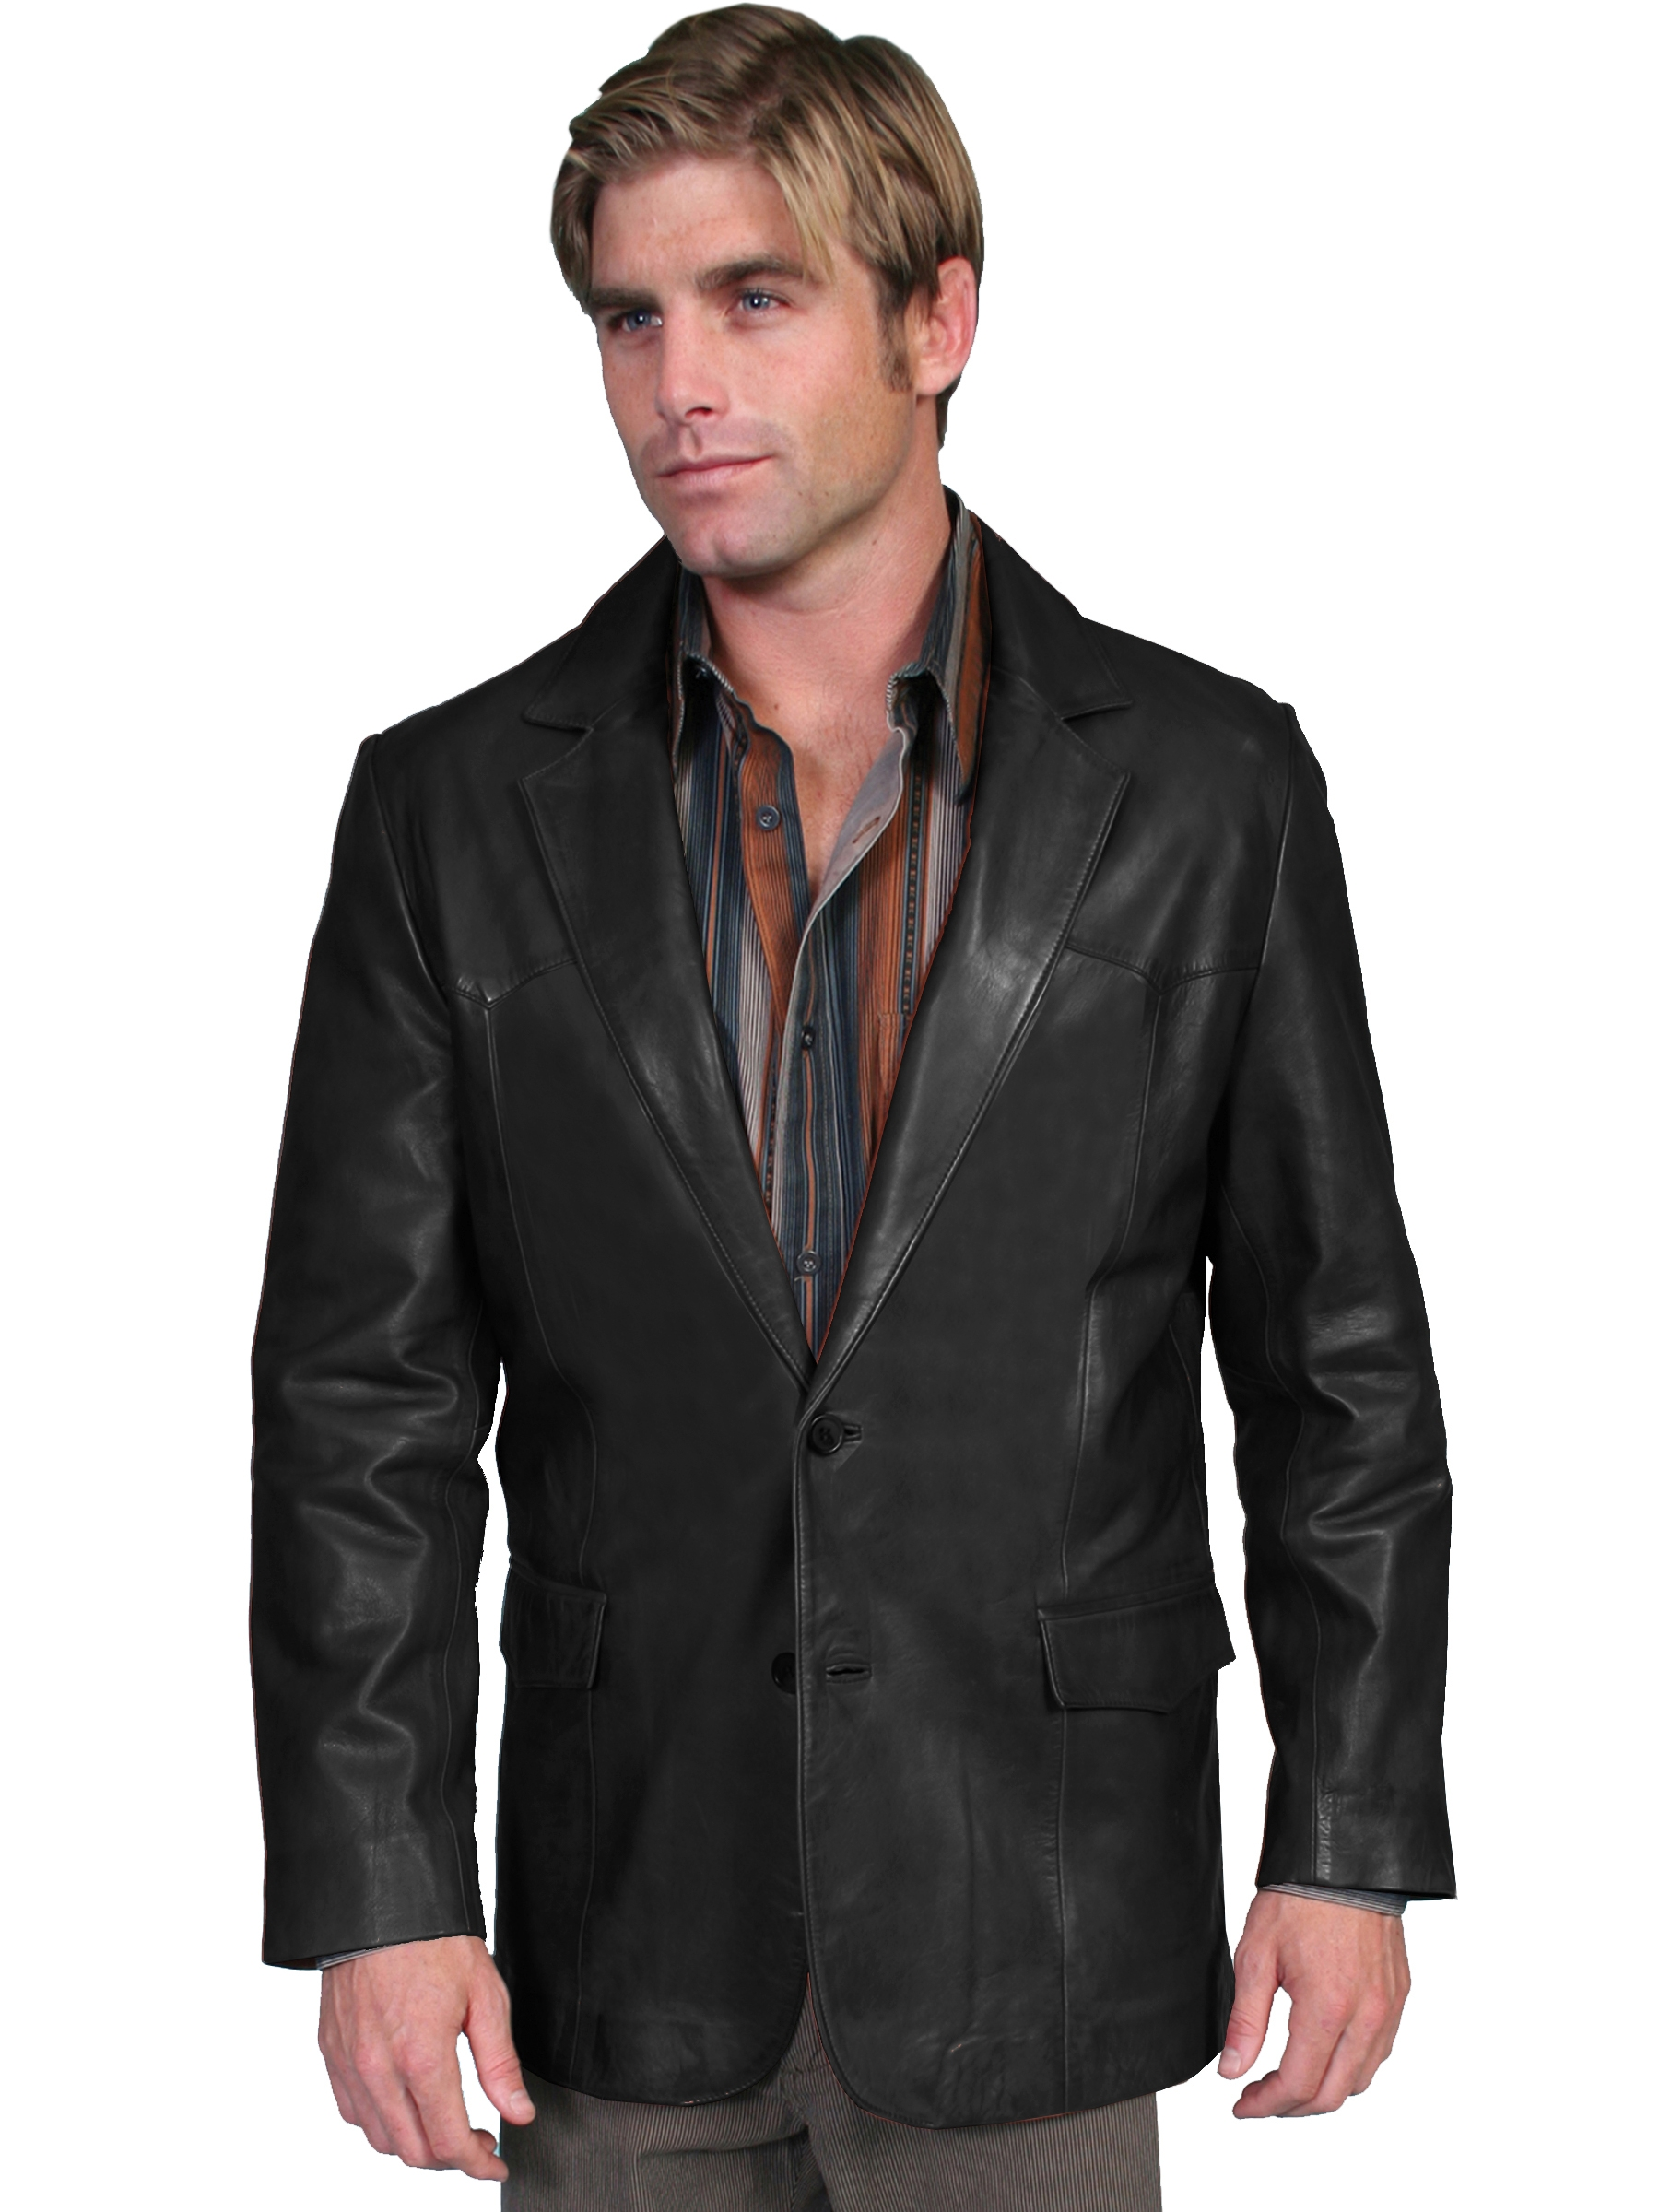 mens leather coats, western coats for men, western blazers for men, cowboy jacket, cowboy coats, cowboy blazers, western jackets for men, western blazer, western coats, scully blazers, scully coats, scully